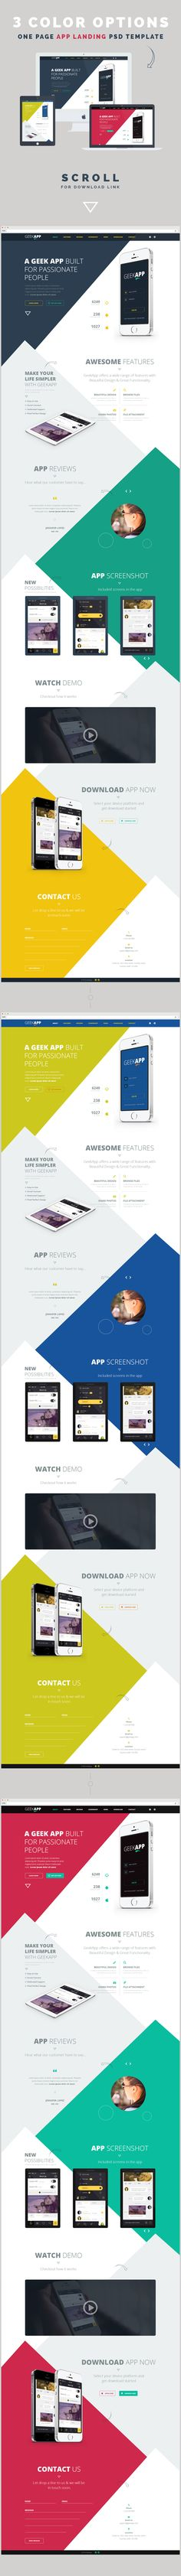 GeekApp - One Page App Landing PSD Template by webduck, via Behance